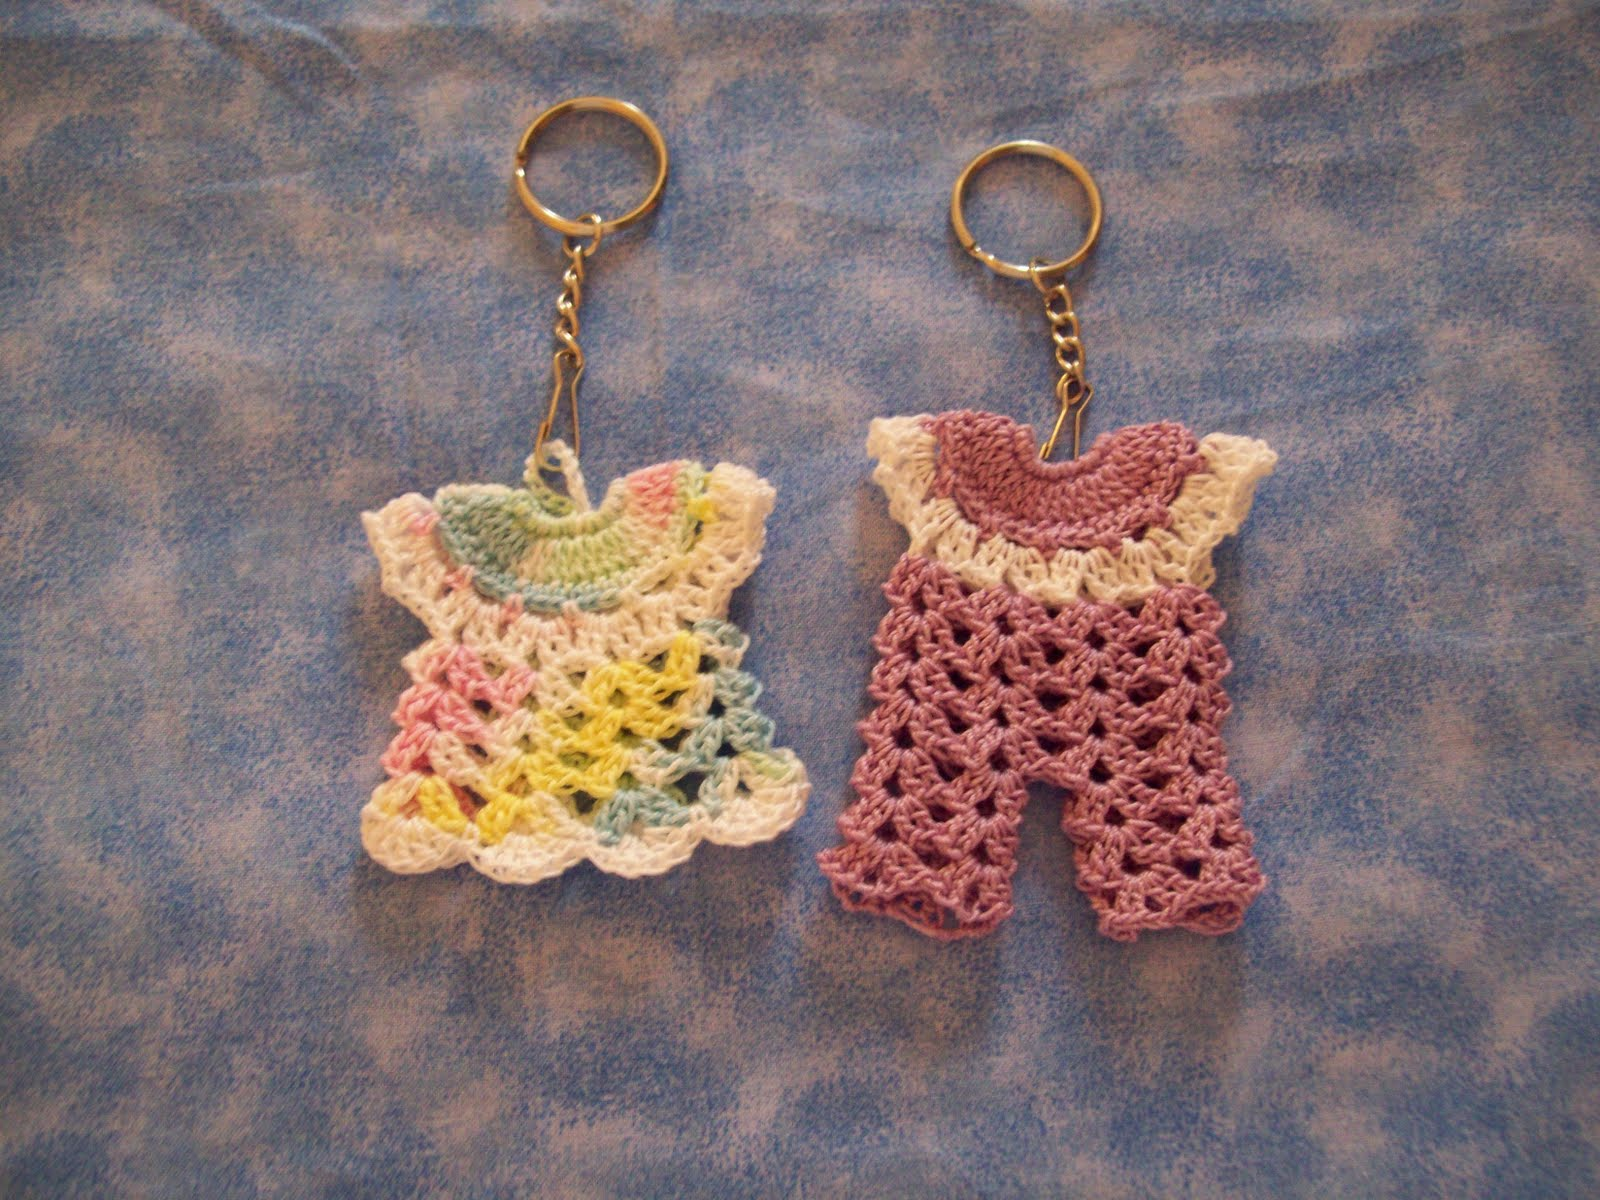 Crochet Princess: Keychains and Crochet